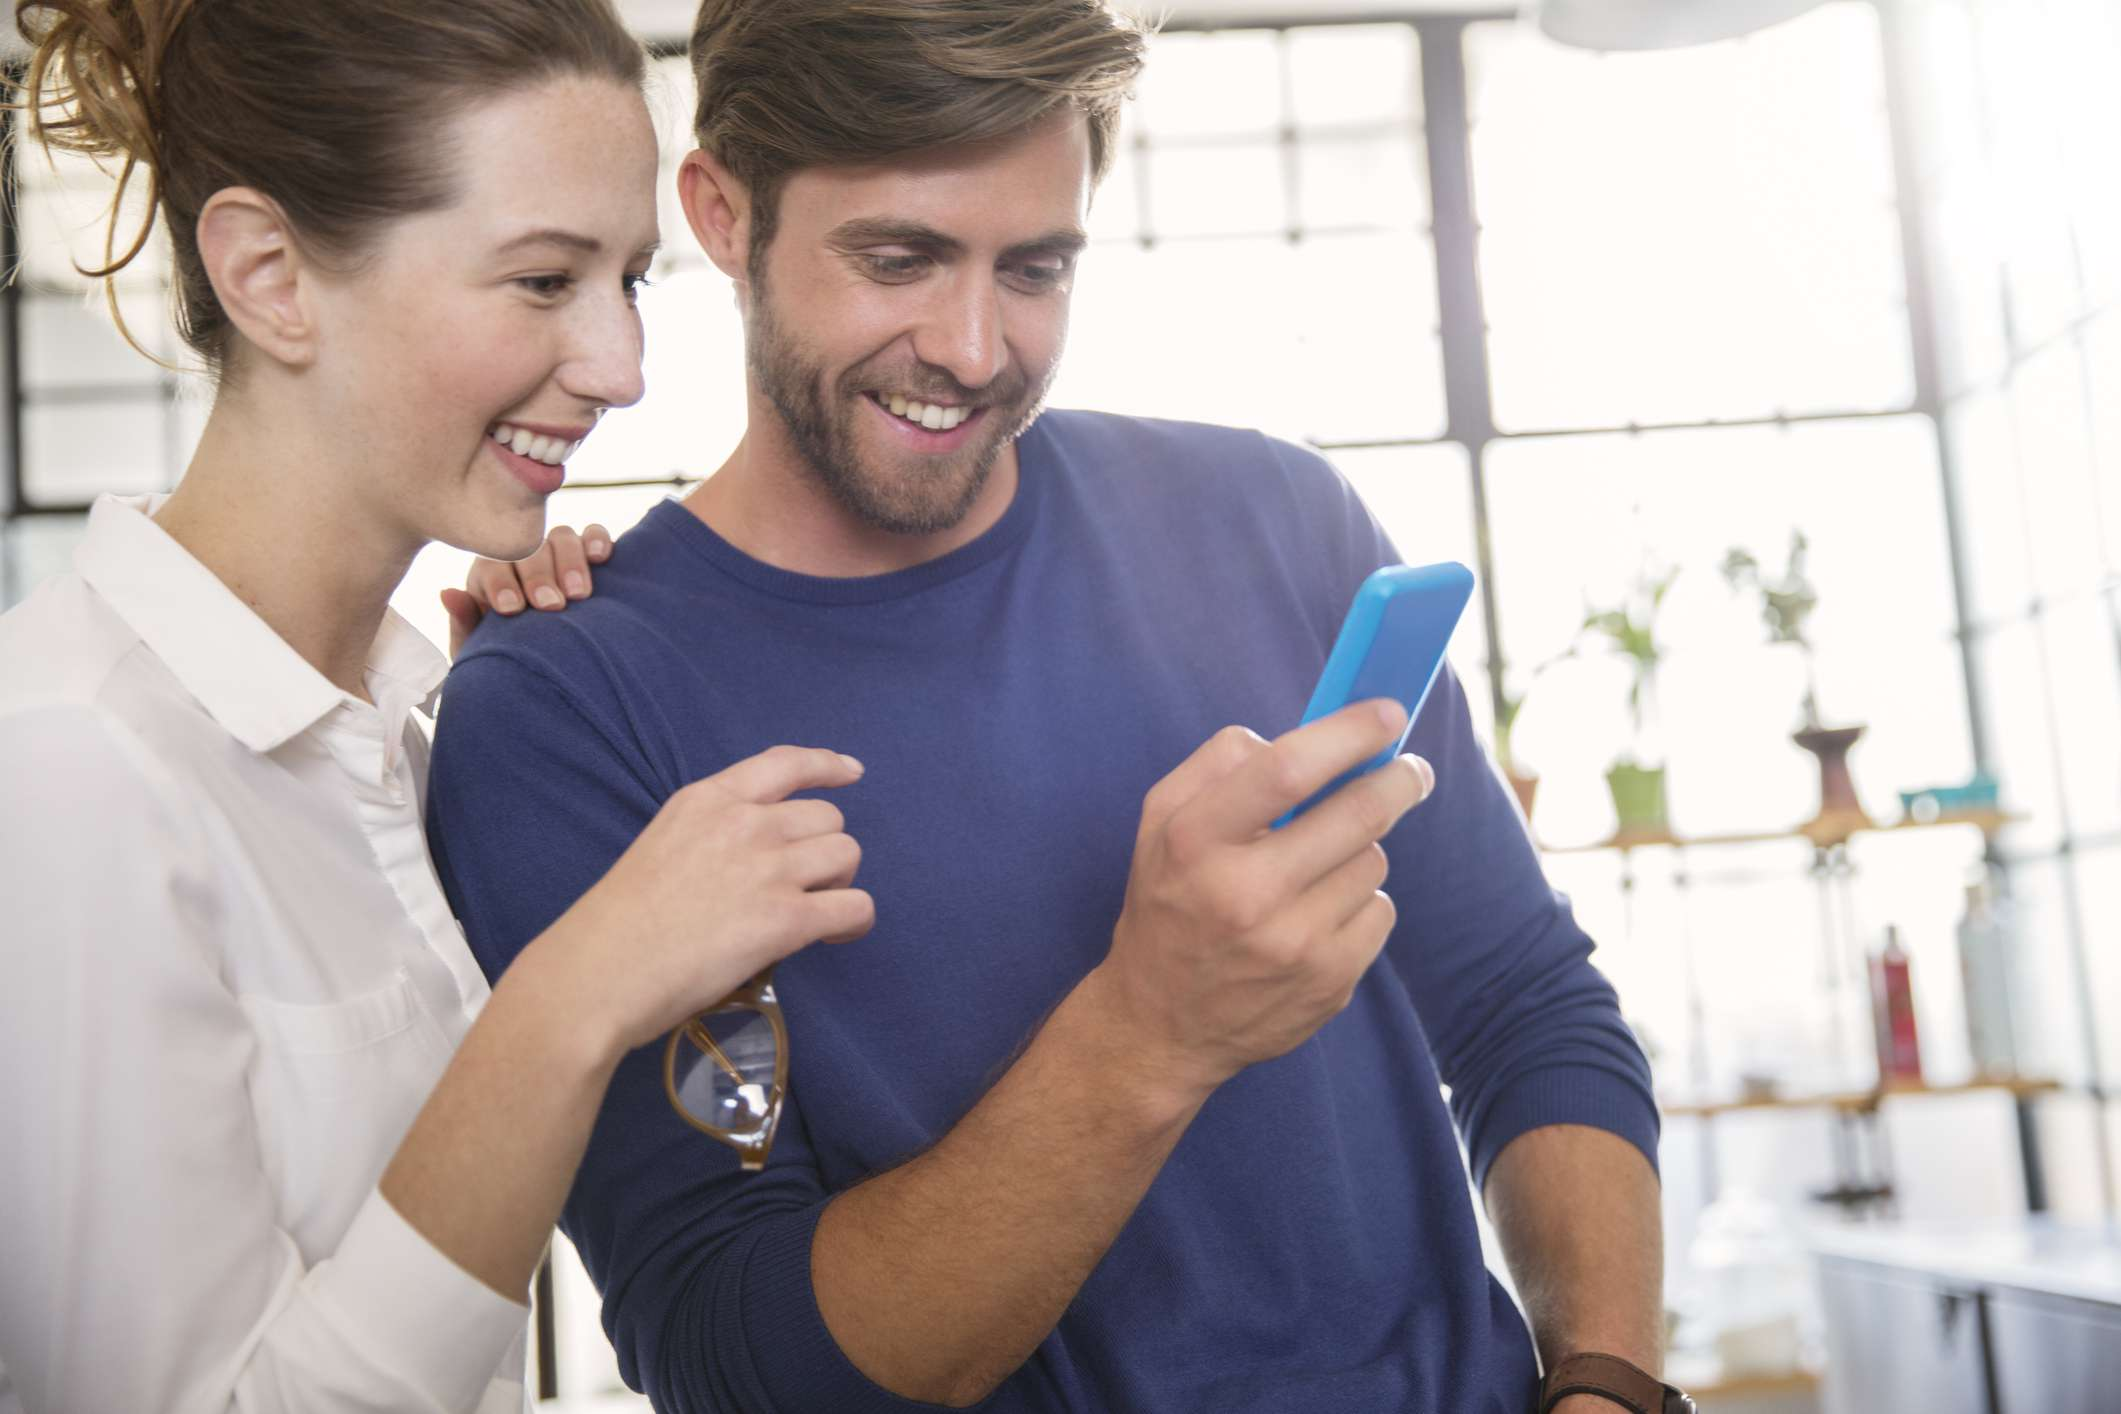 Two people looking at a phone